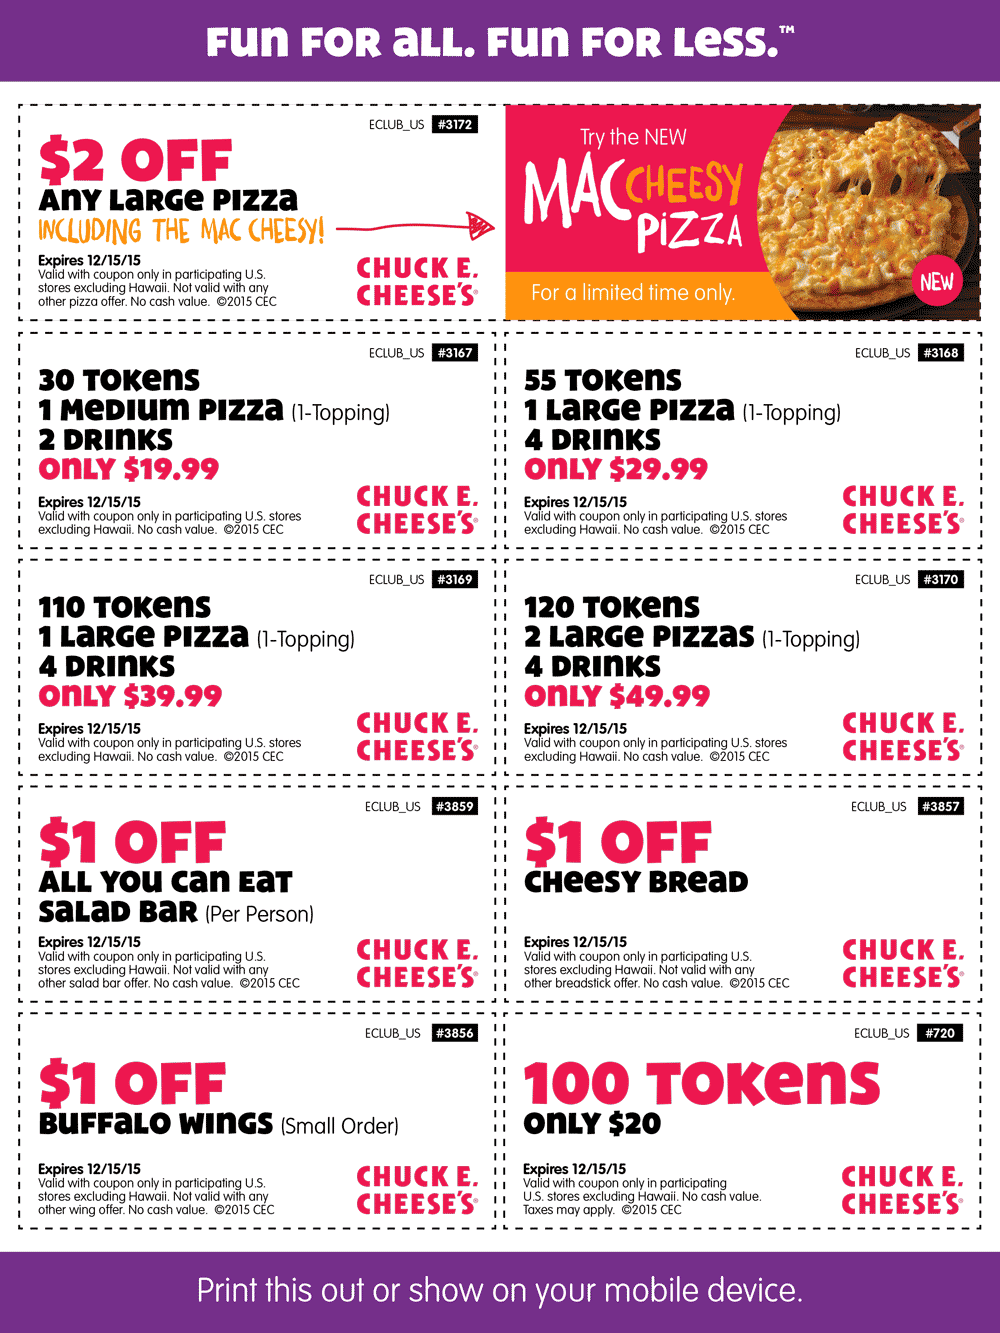 Chuck E. Cheese Coupon February 2019 30 tokens + pizza + drinks or 100 tokens for $20 & more at Chuck E. Cheese